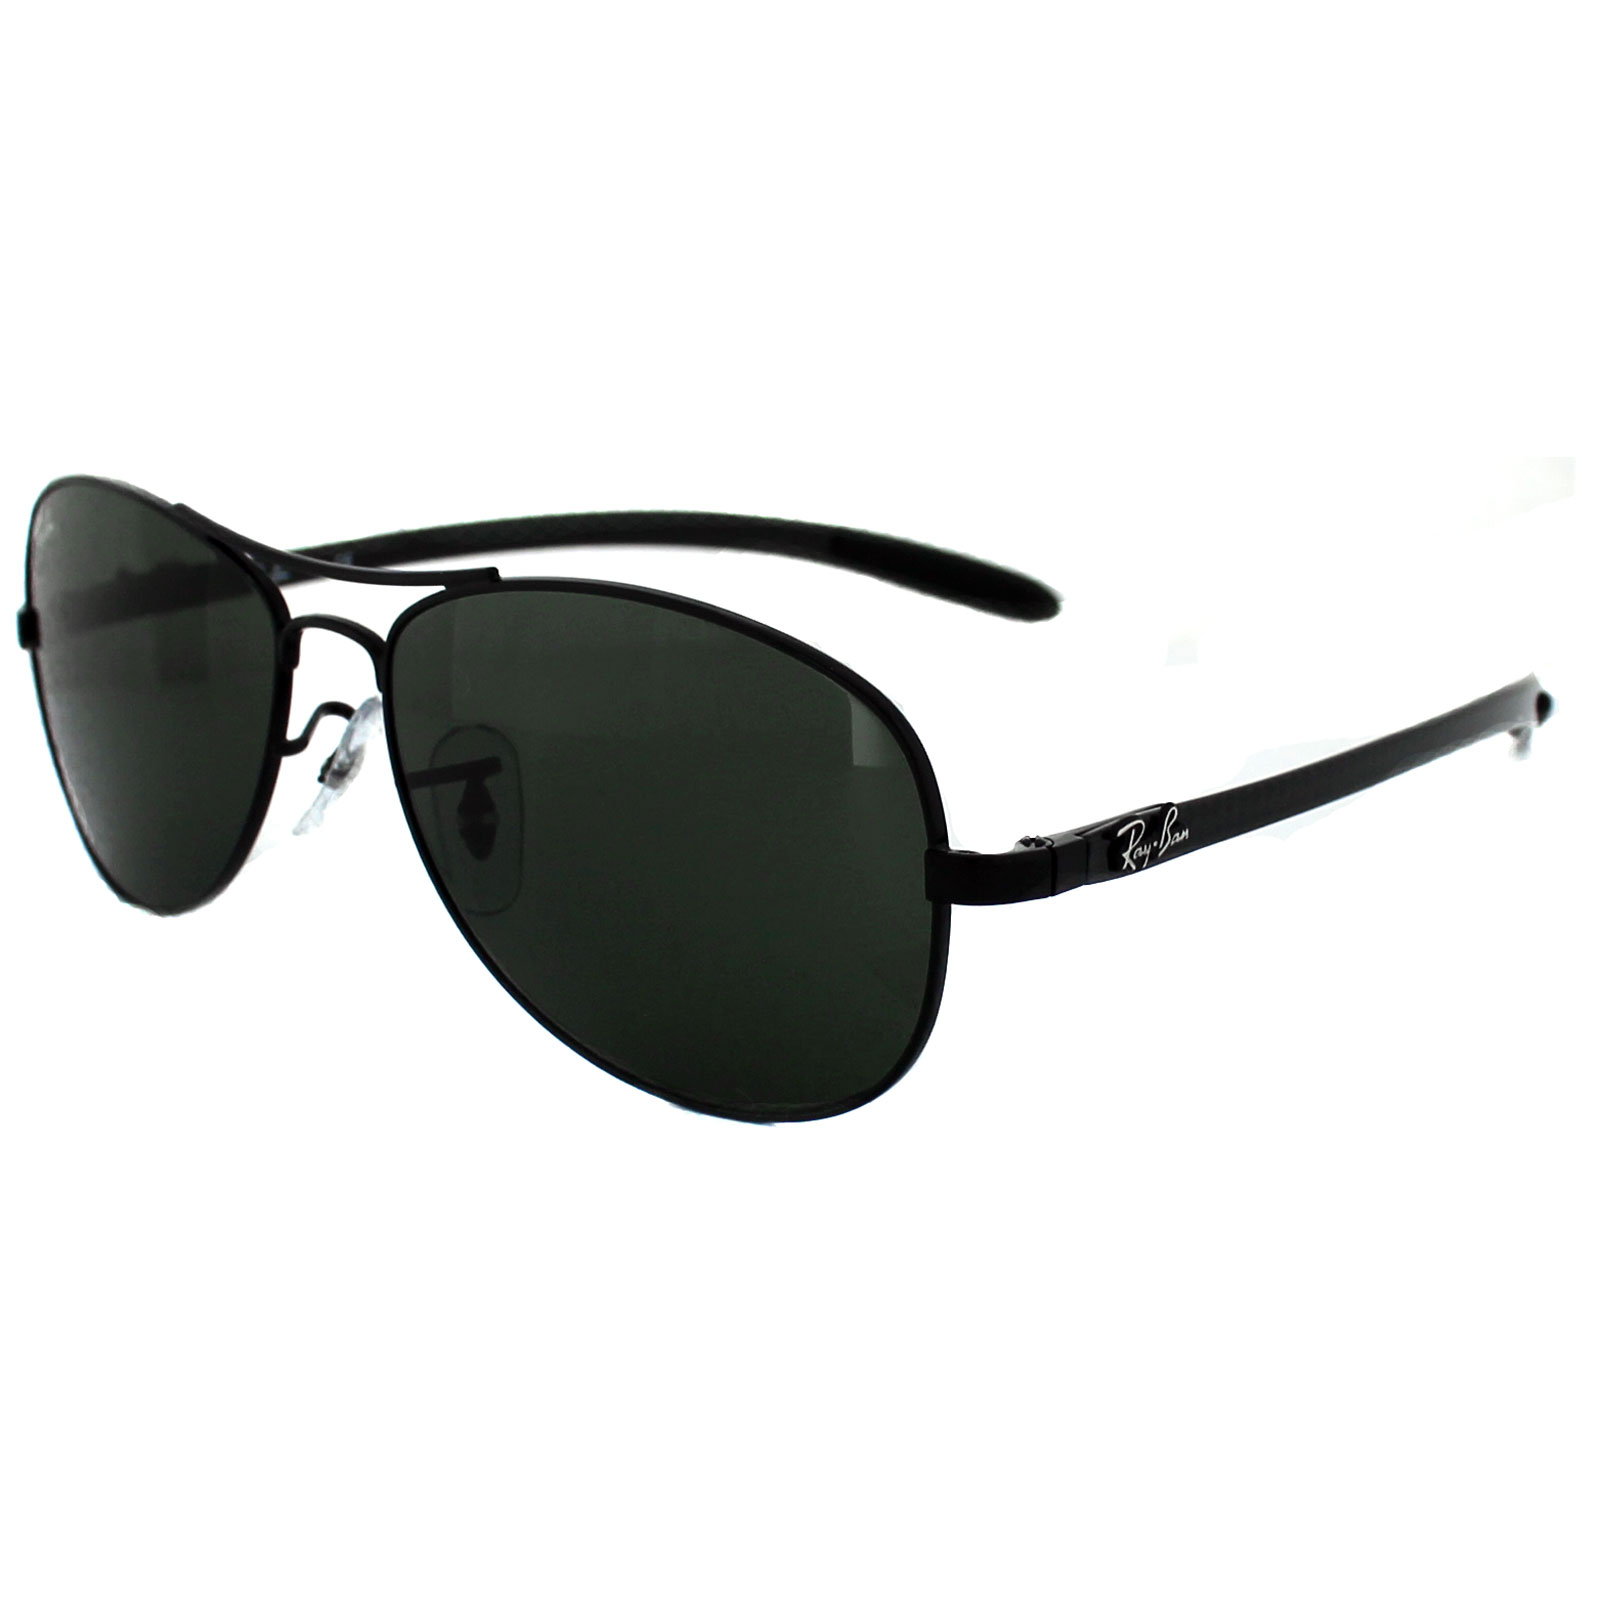 Ray-Ban RB 8301 002 56 black QpnwkqA